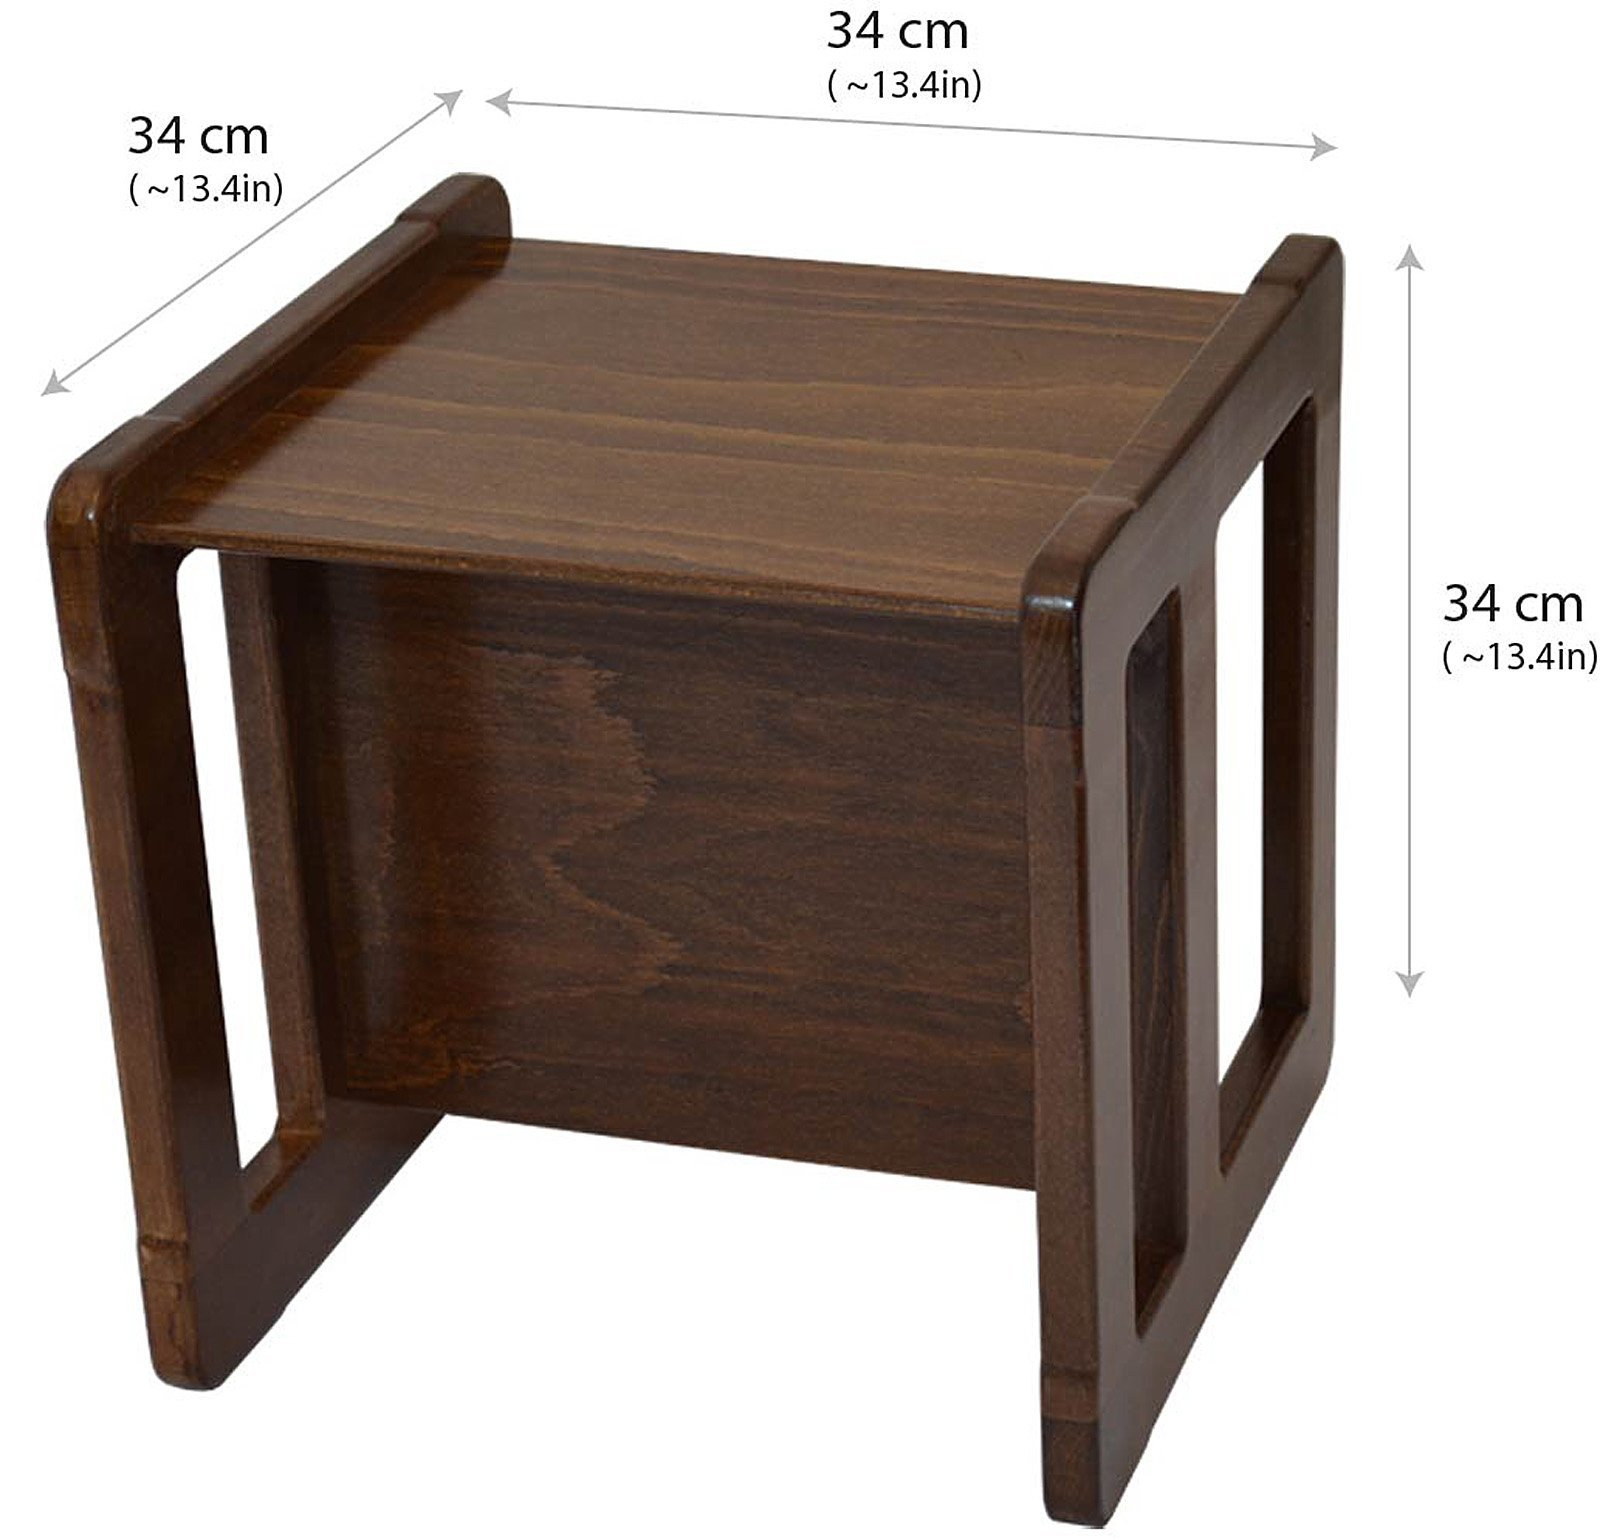 3 in 1 Childrens Multifunctional Furniture Set of 2, One Small Chair or Table and One Large Chair or Table Beech Wood, Dark Stained by Obique Ltd (Image #6)